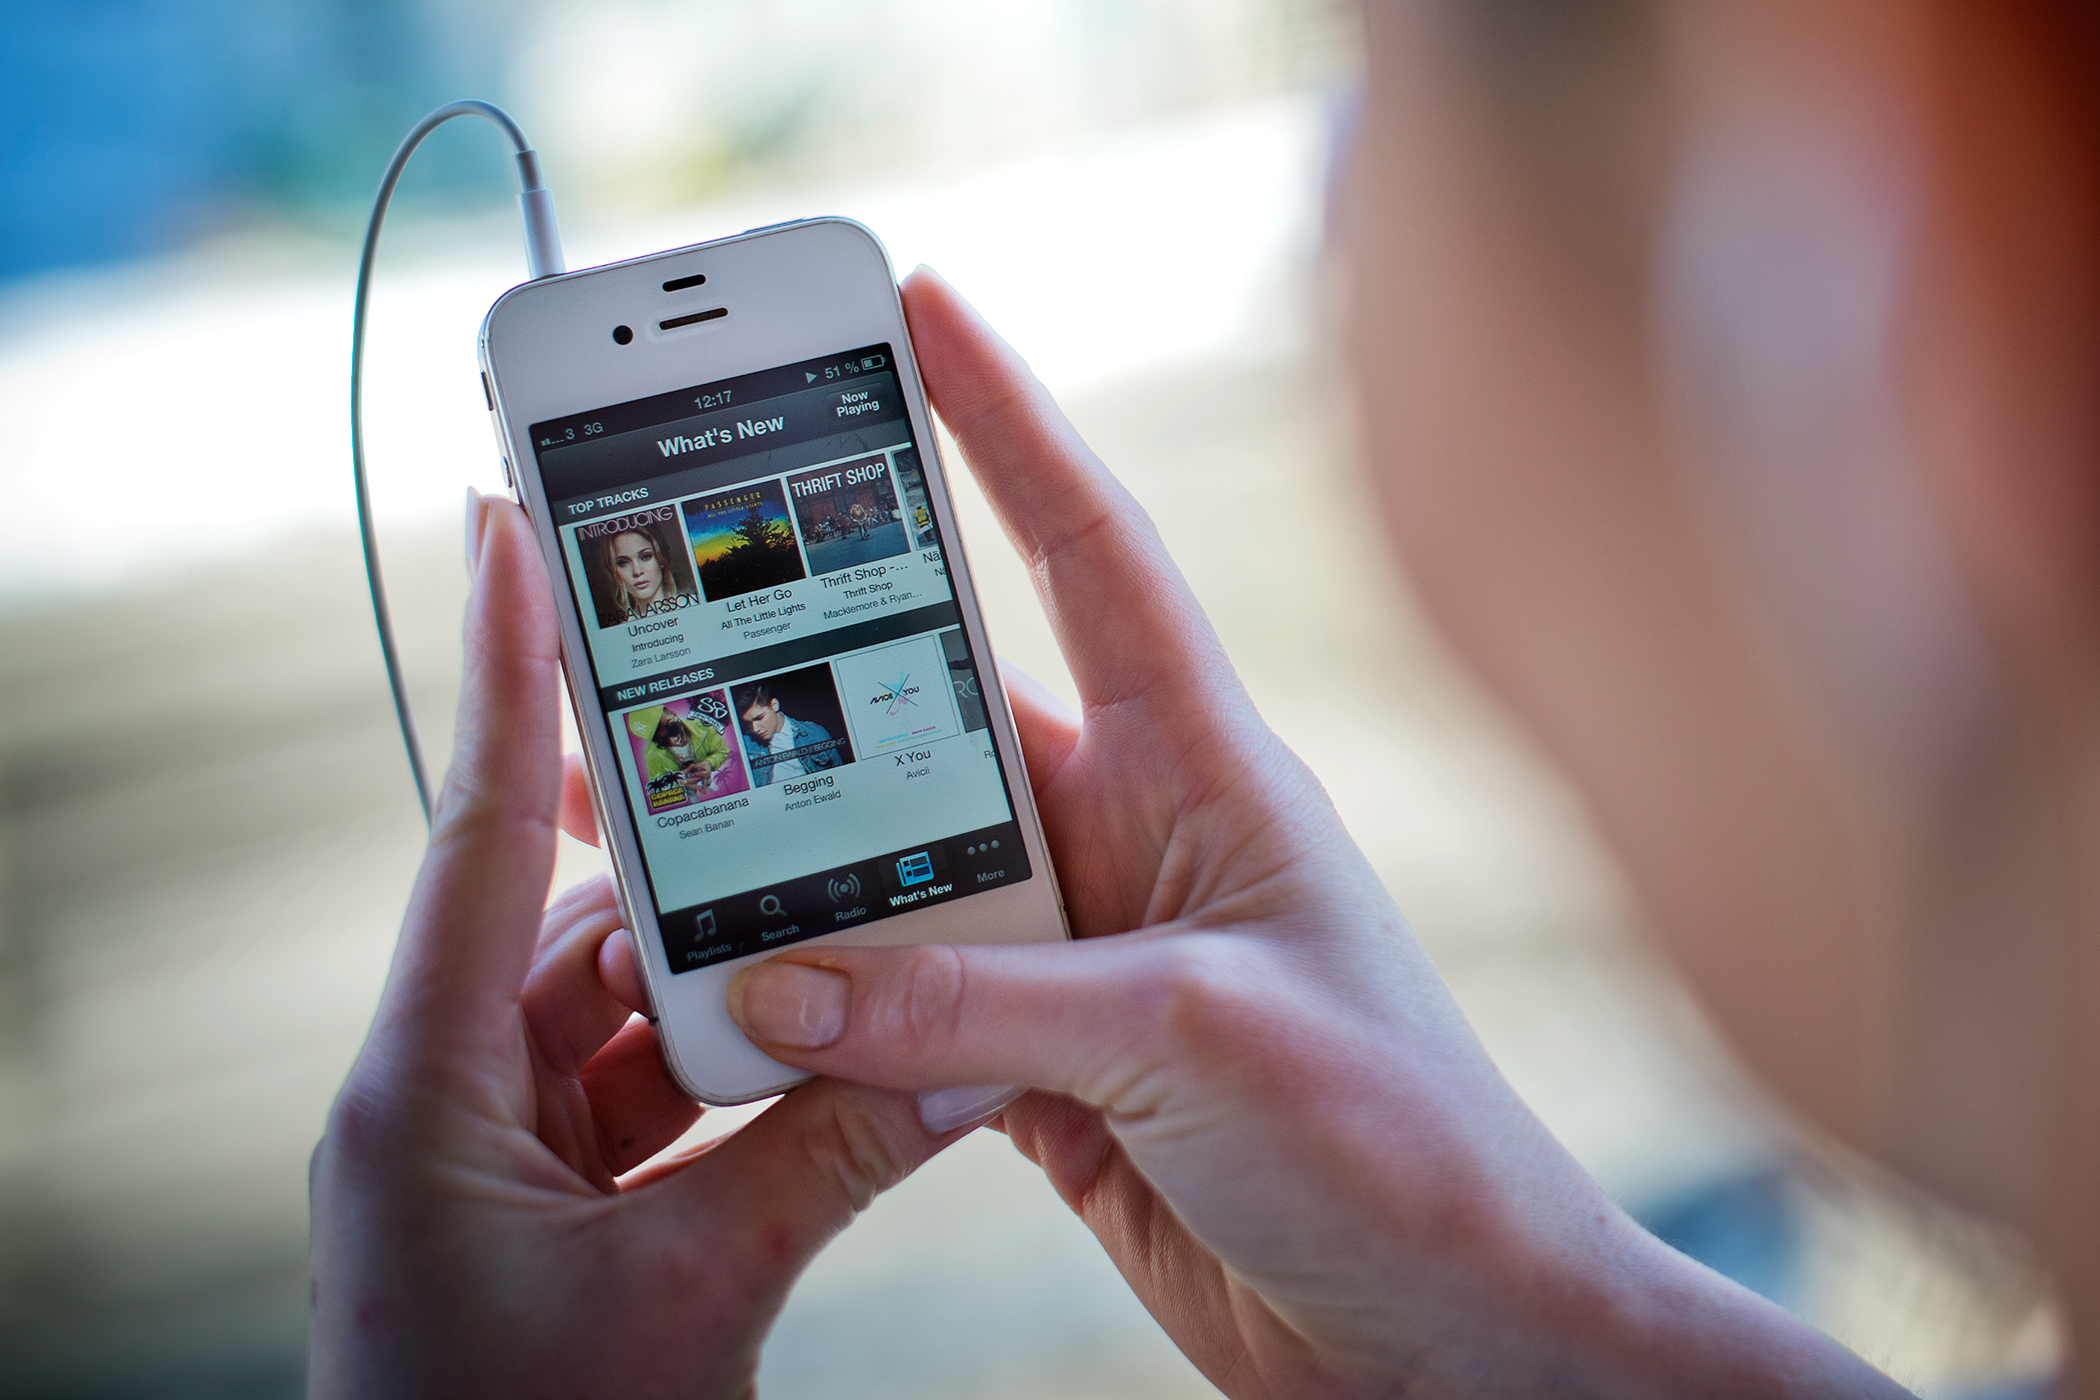 This photo shows a woman as she uses the iPhone application of Swedish music streaming service Spotify on March 7, 2013.